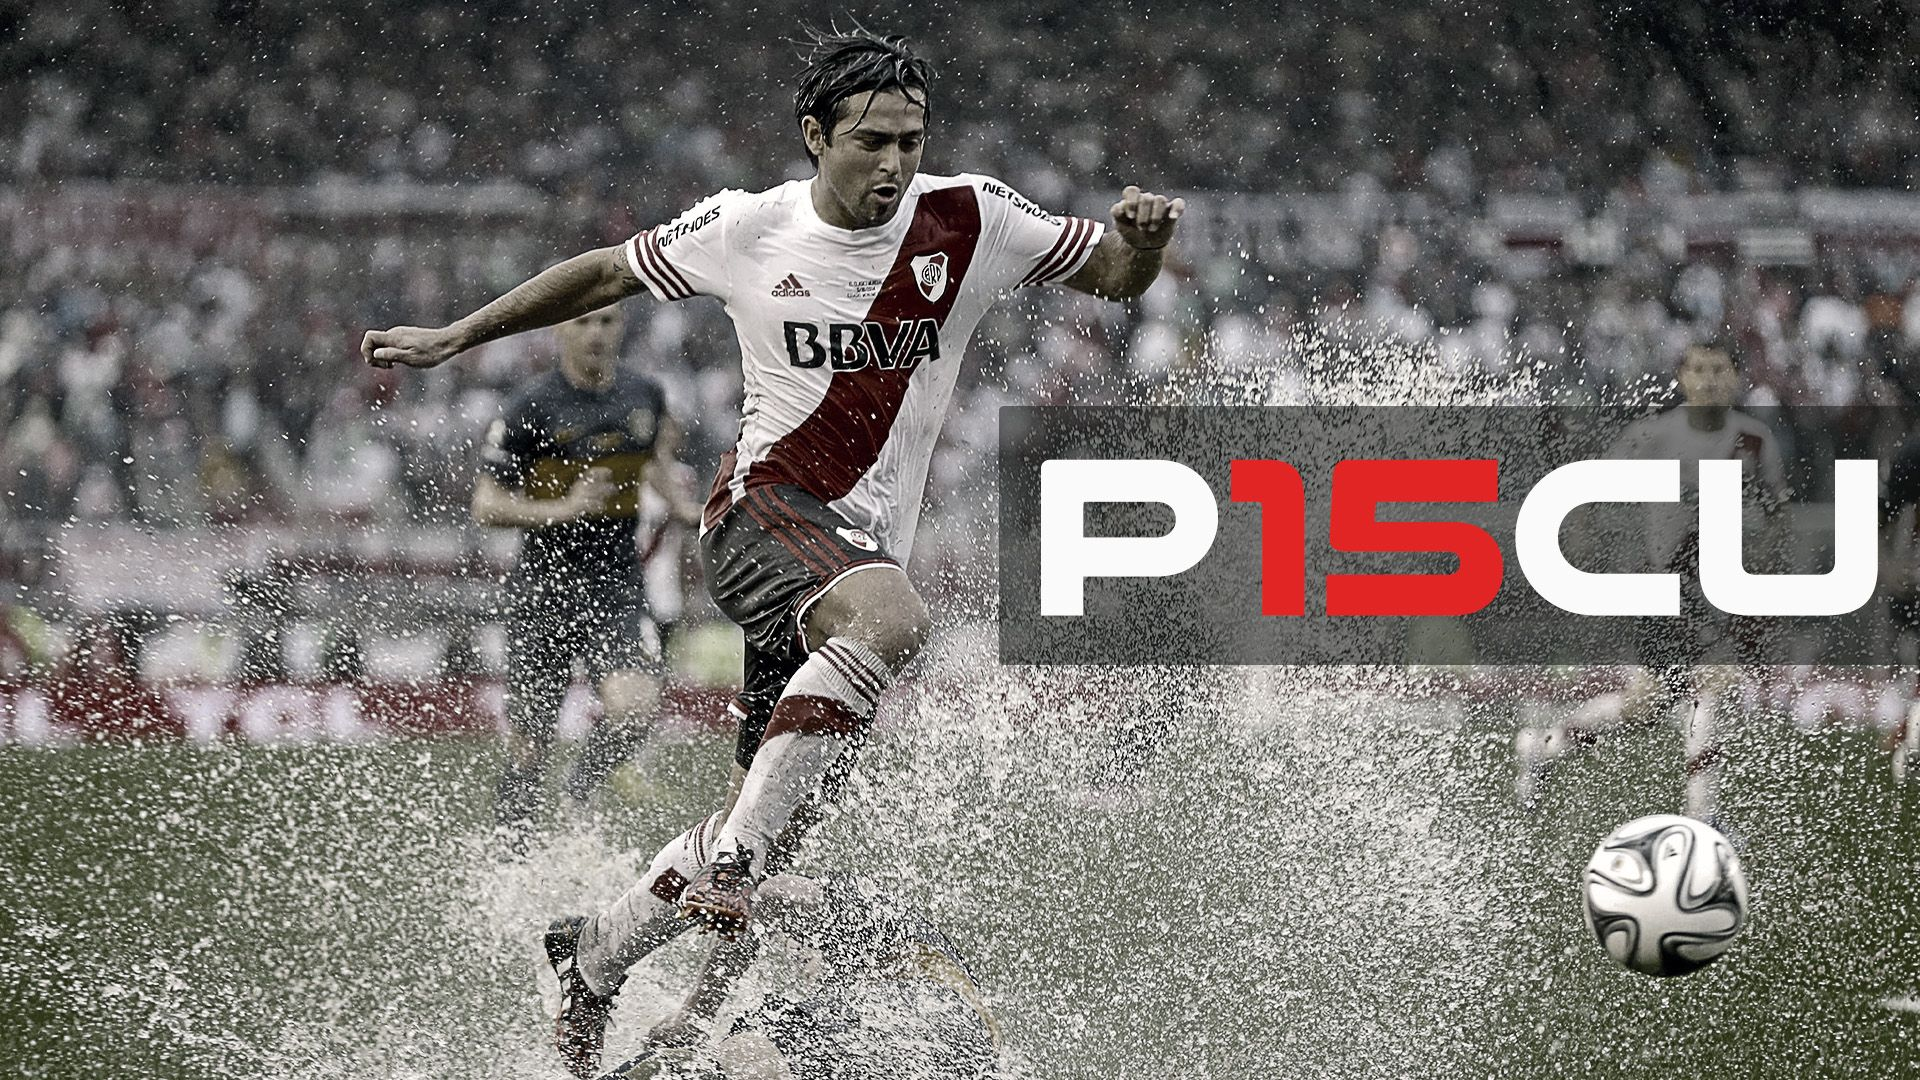 Wallpapers de river plate 2016 for Home 2015 wallpaper hd